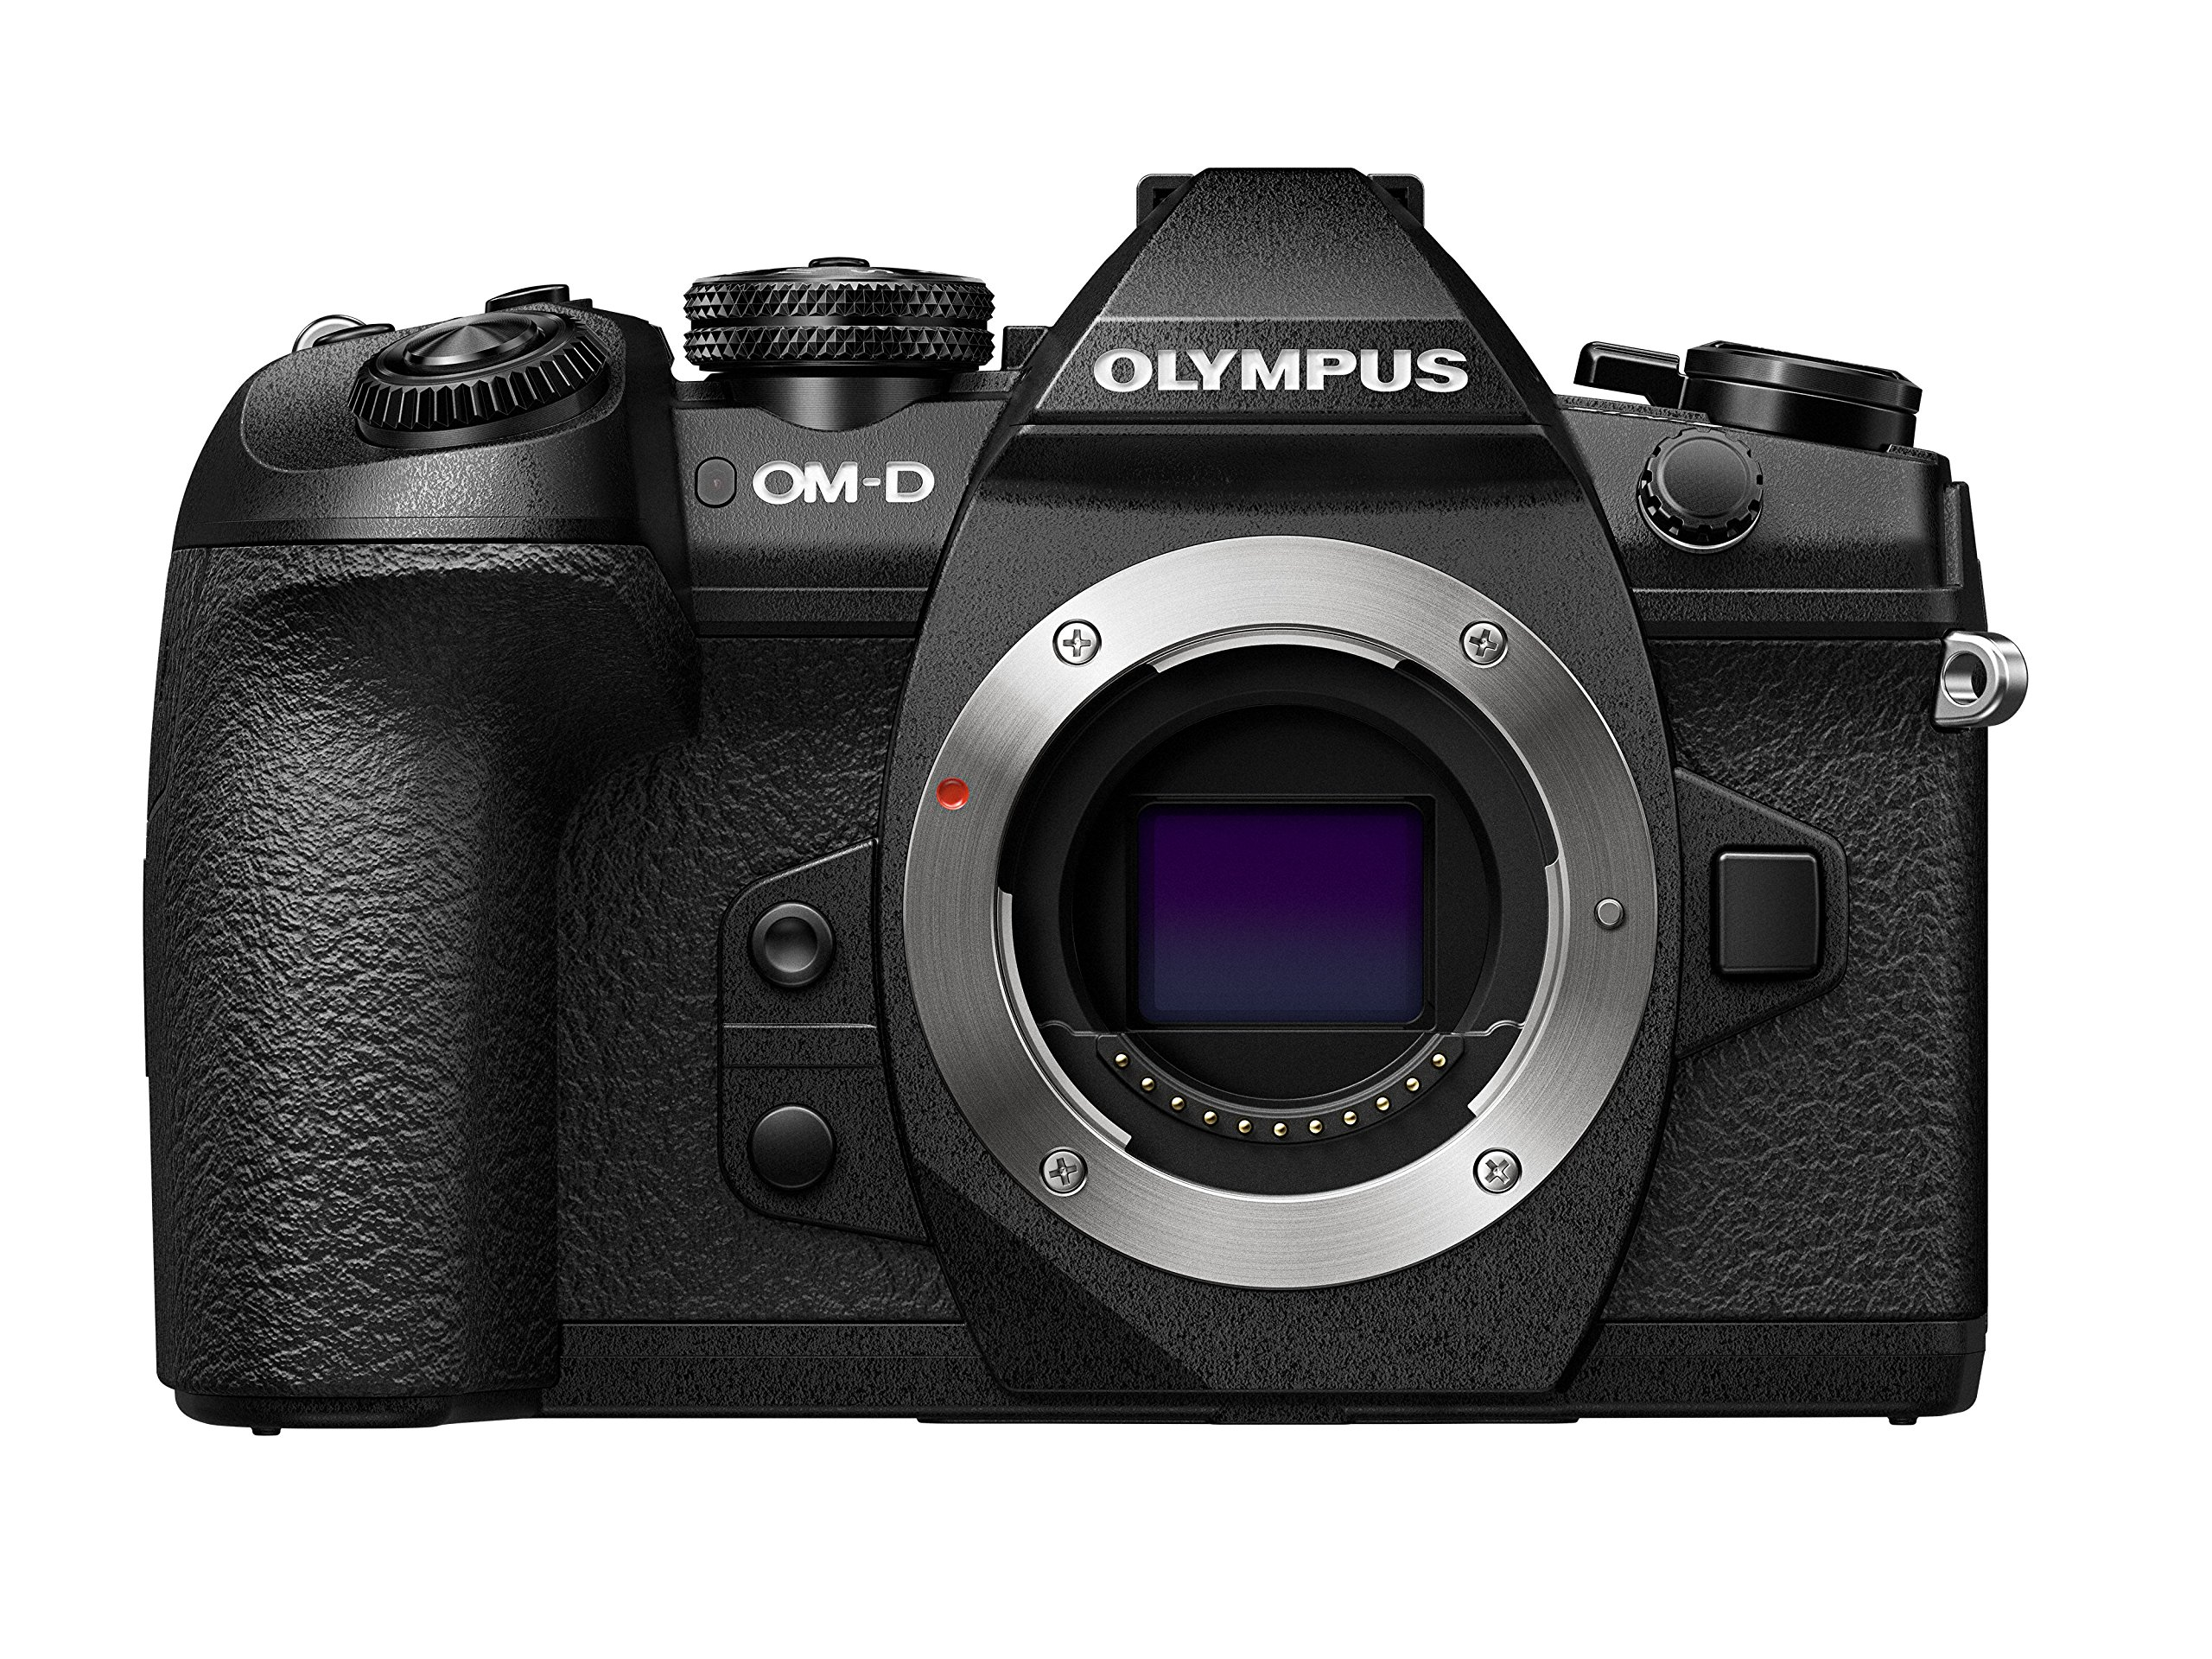 Olympus OM-D E-M1 Mark II 4K Mirrorless Camera Body, 20.4 Megapixels, 5-Axis IS, 60fps, 3-Inch Touch LCD, Black